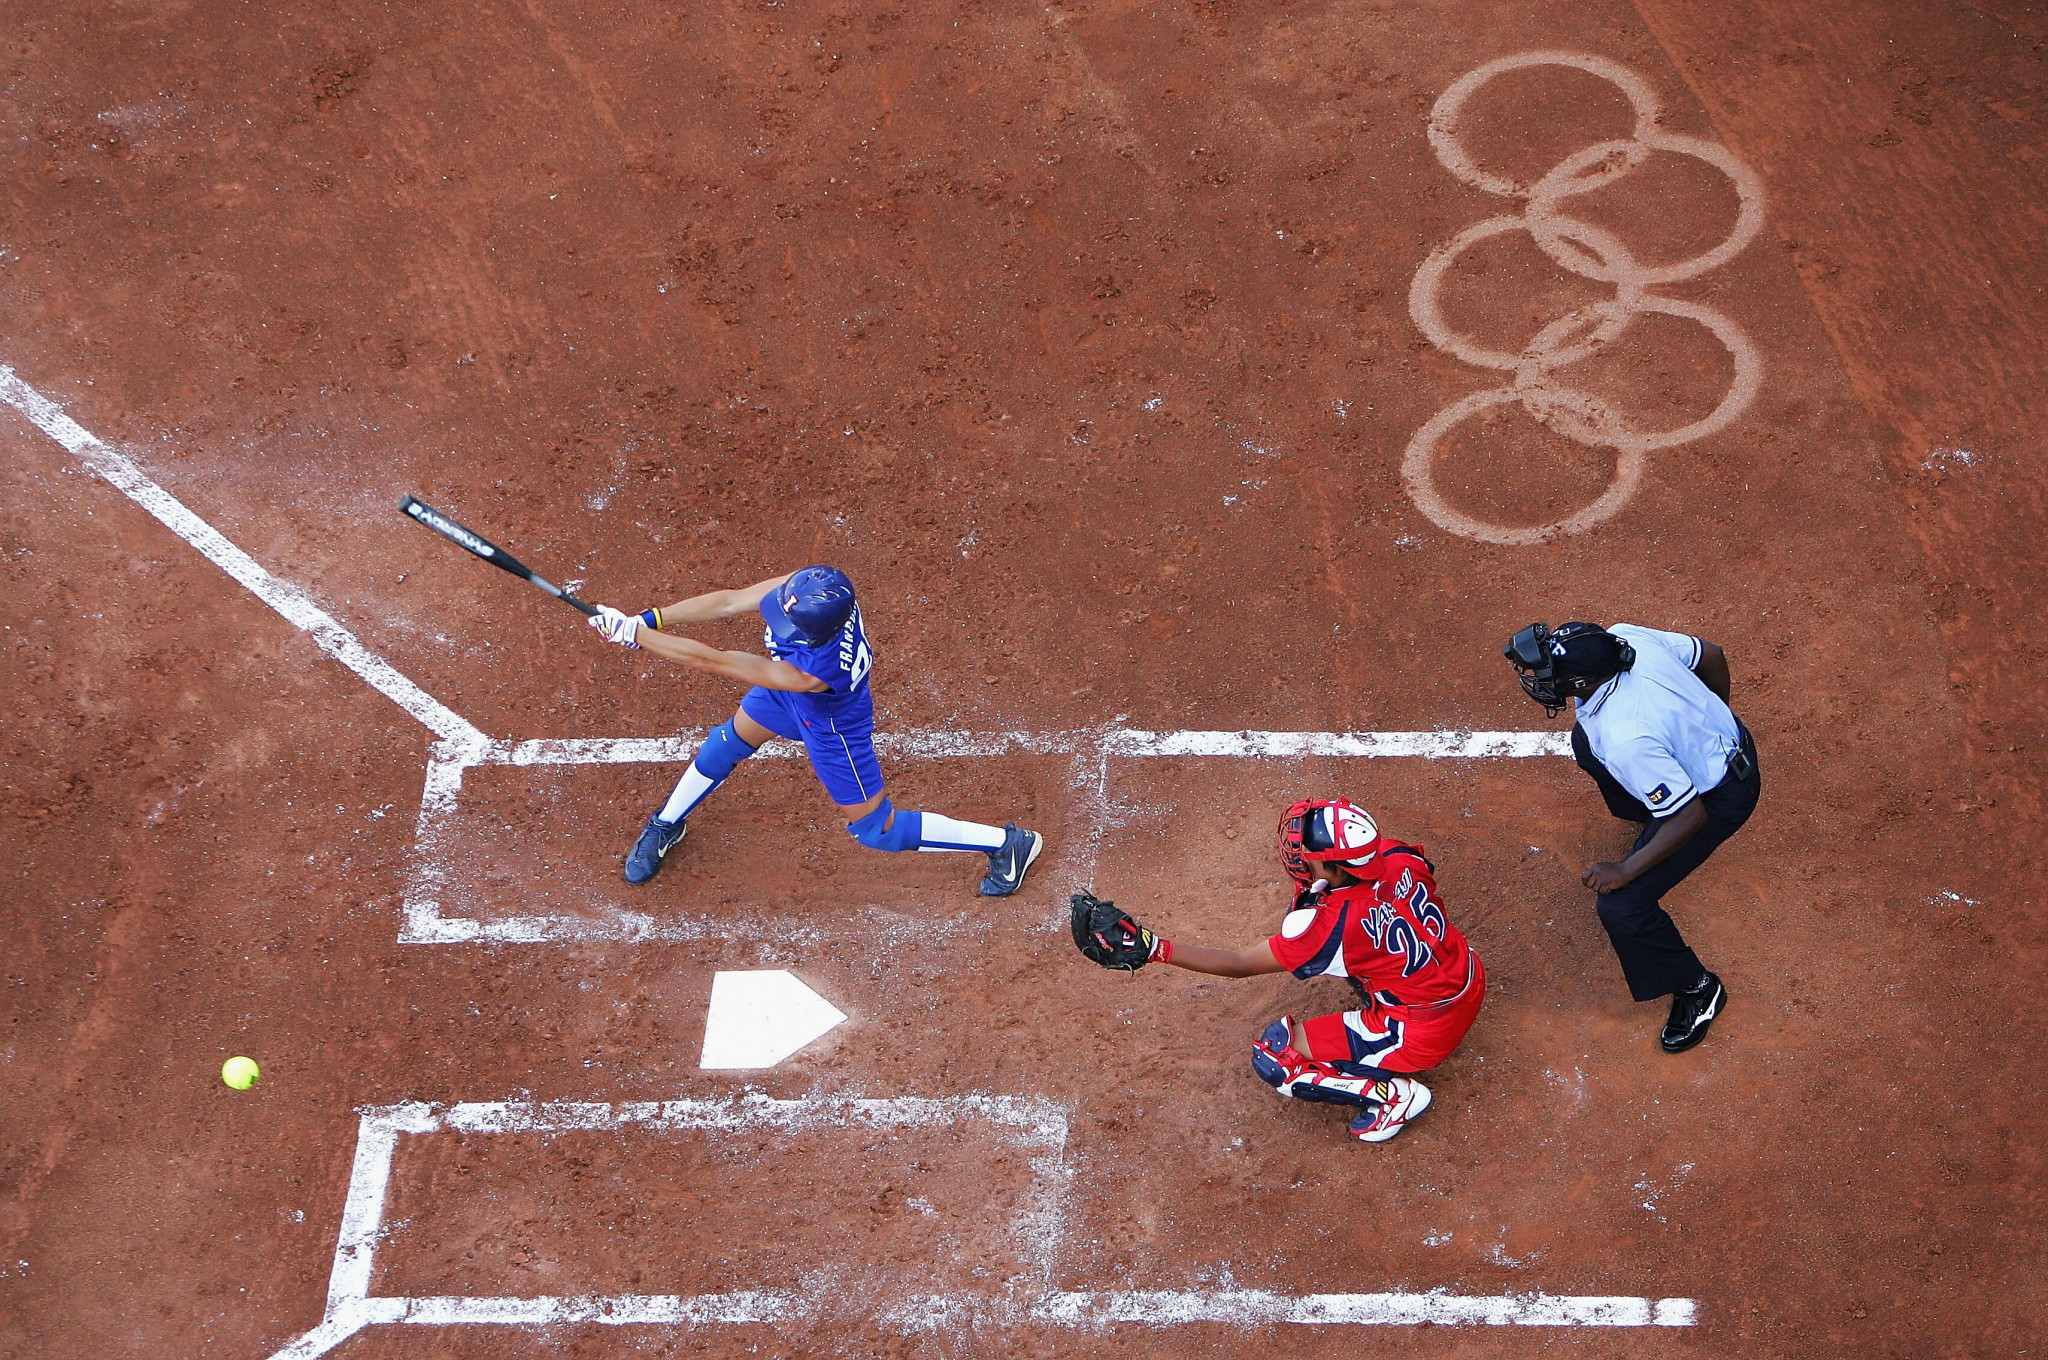 WBSC adopts strategy for bid to play baseball and softball at Los Angeles 2028 Olympics